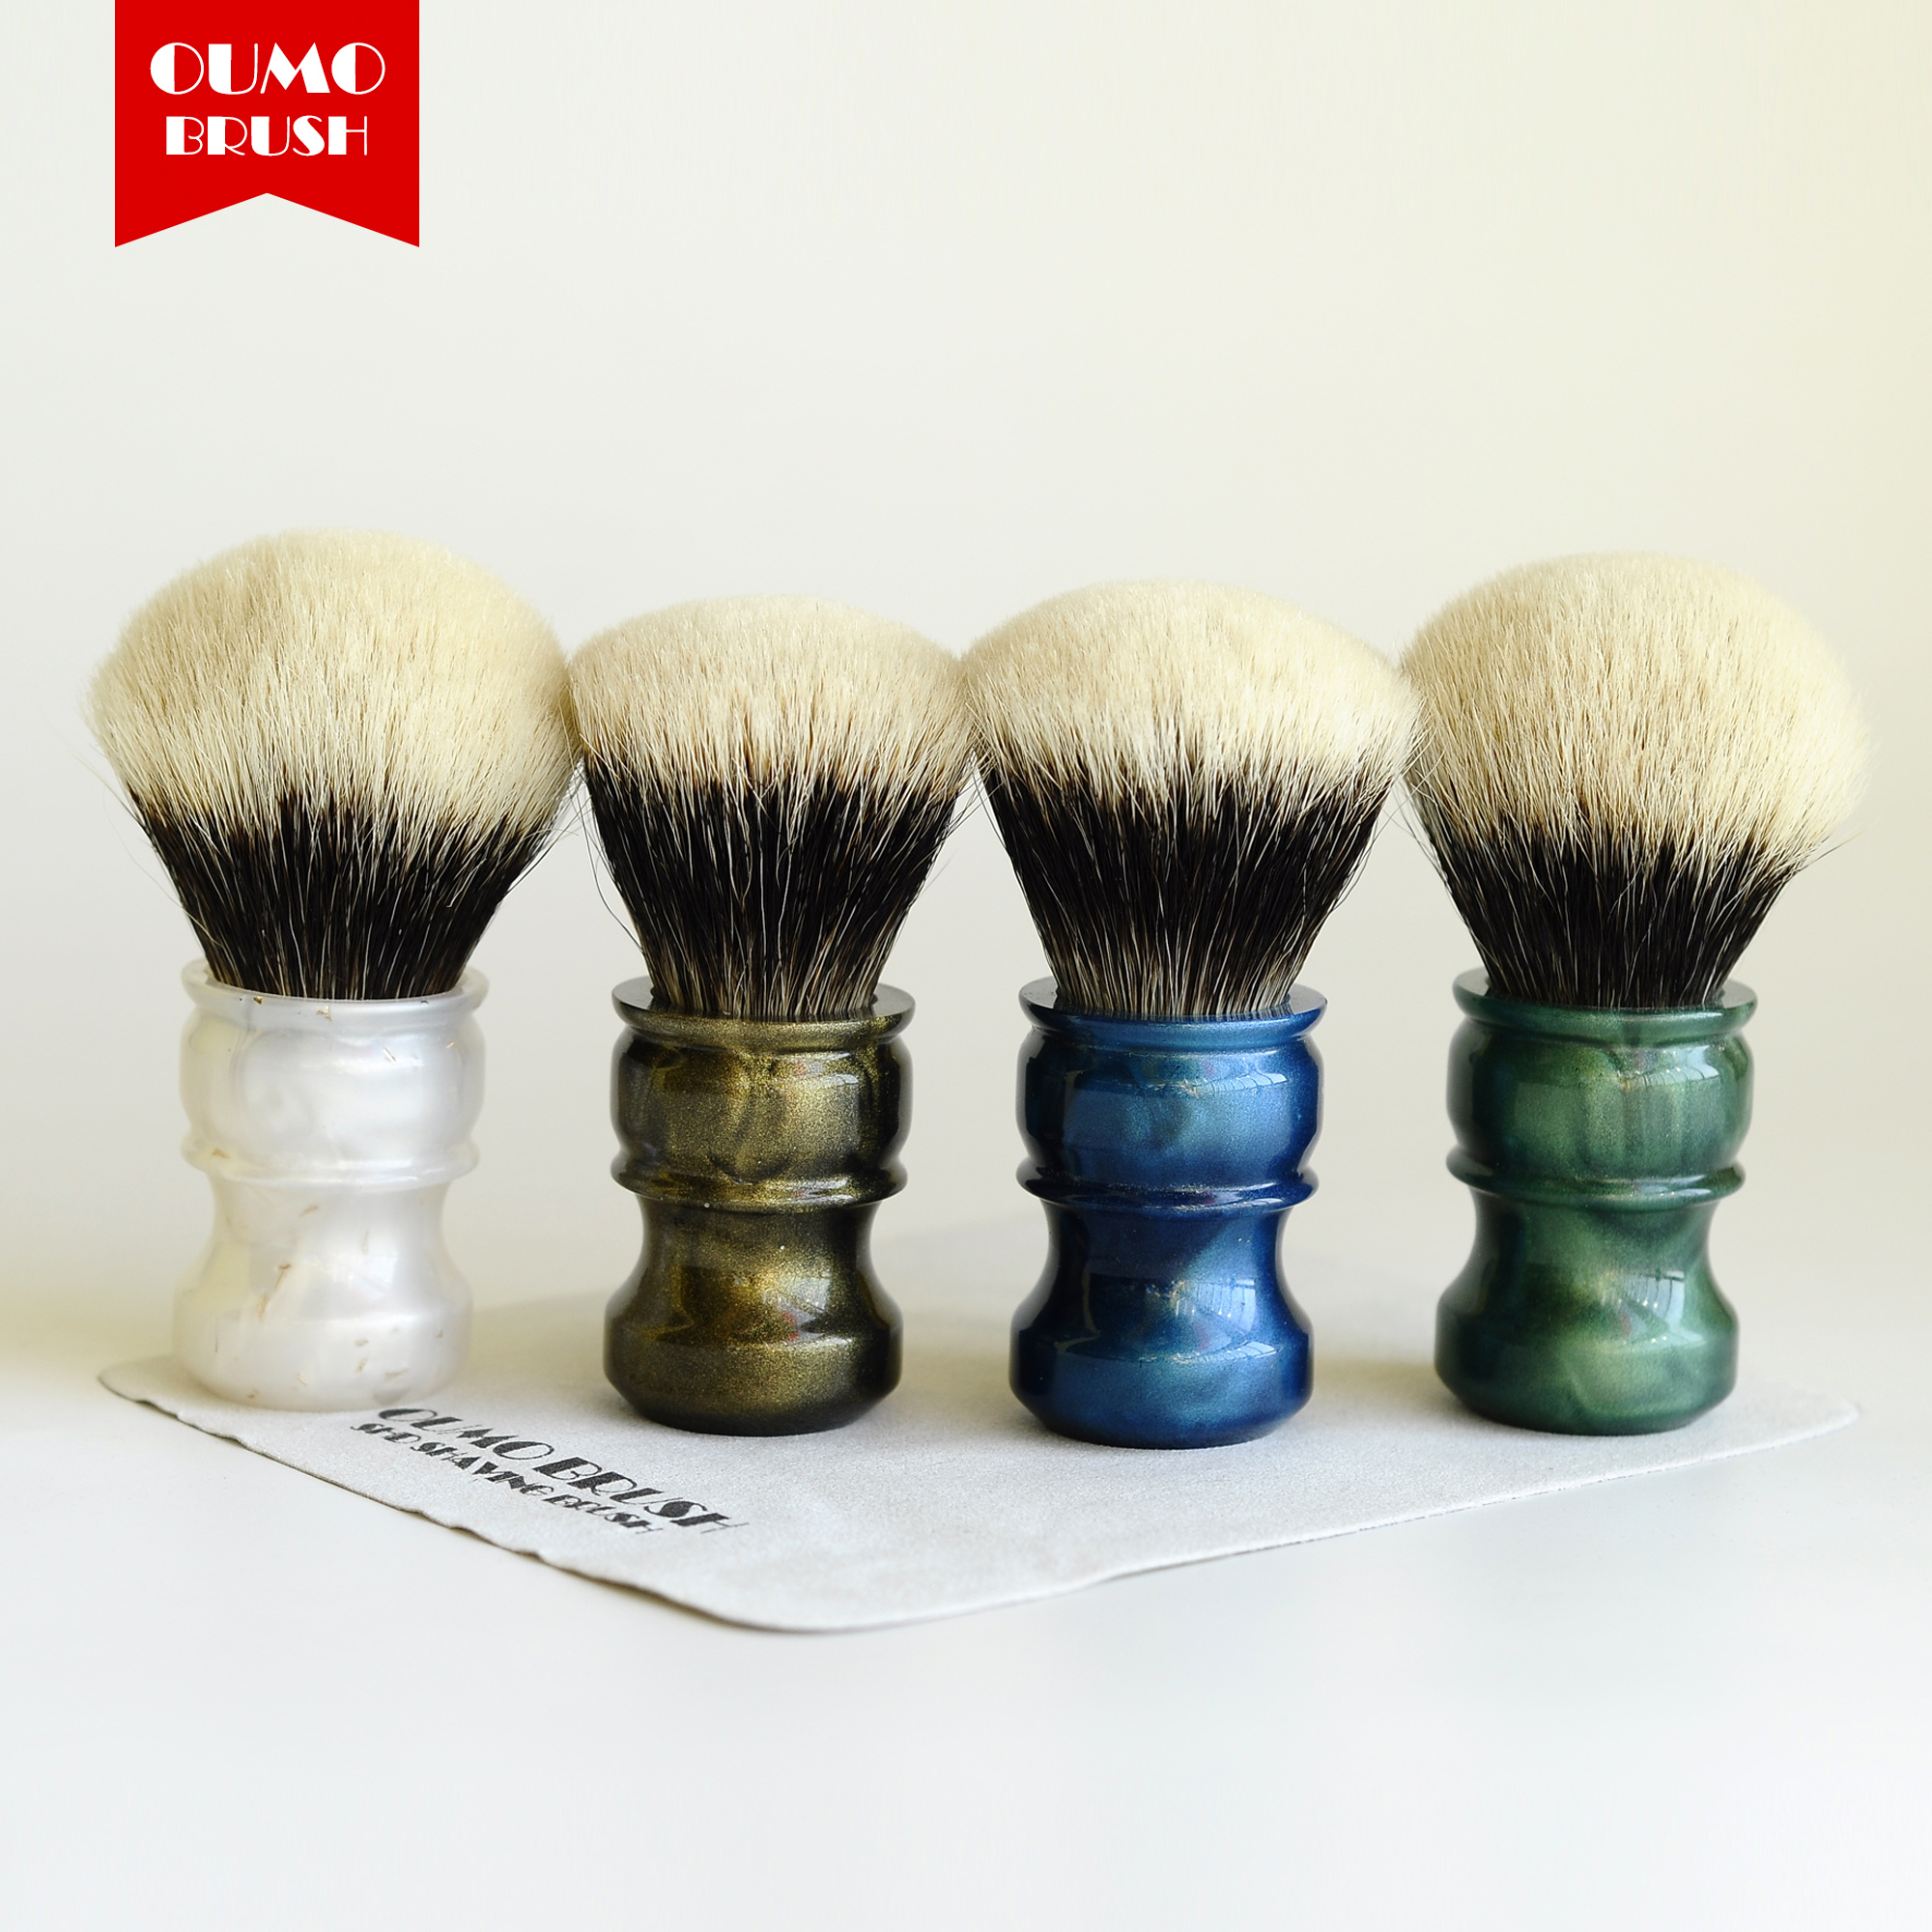 OUMO BRUSH-Fans Exclusive Limit Bulb Handmaster Finest Badger Hair Knots Shaving Brush